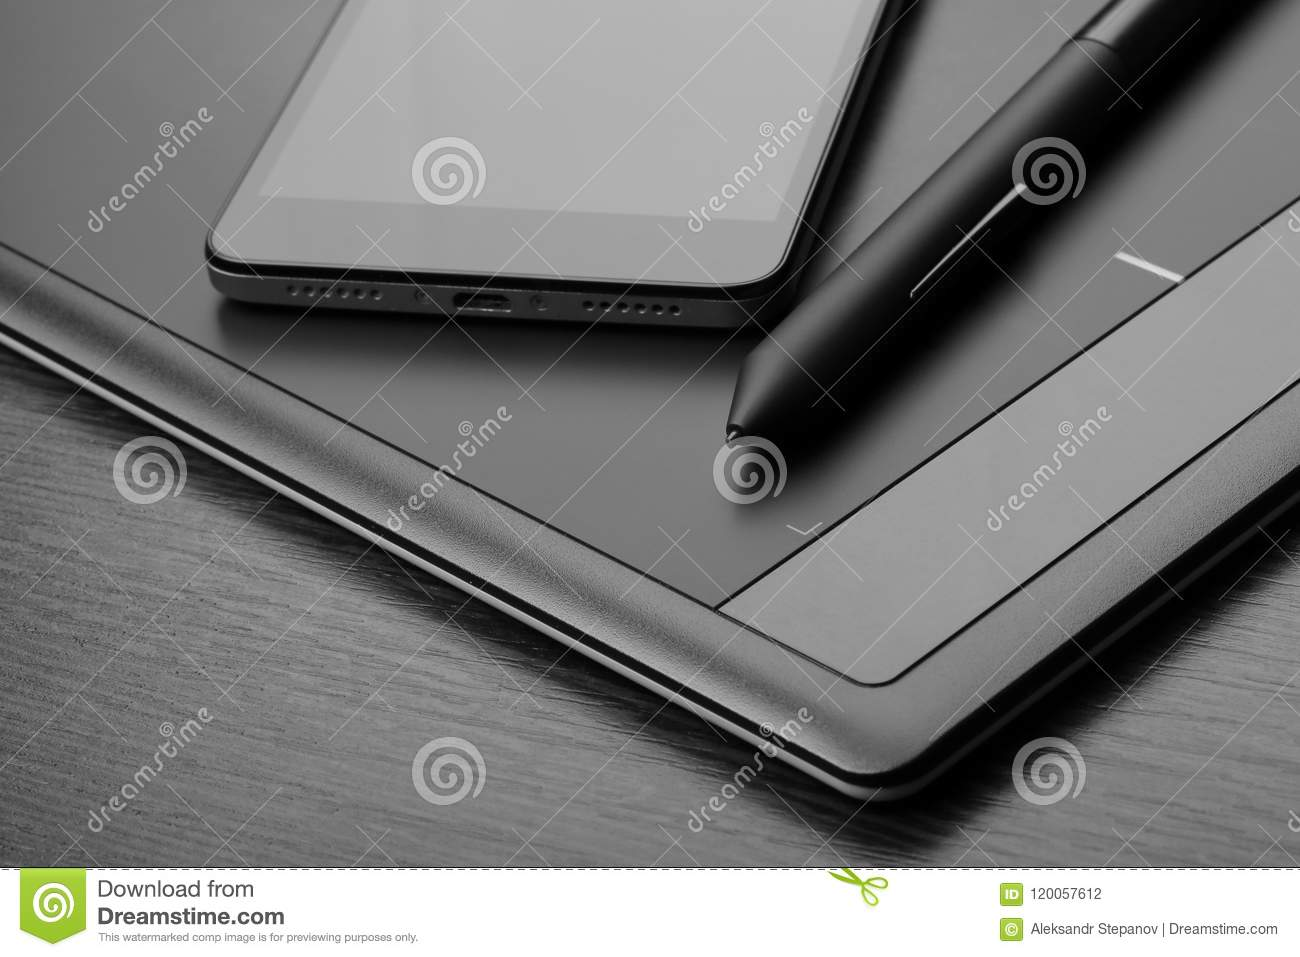 smartphone and graphic tablet also known as a digitizer or digital